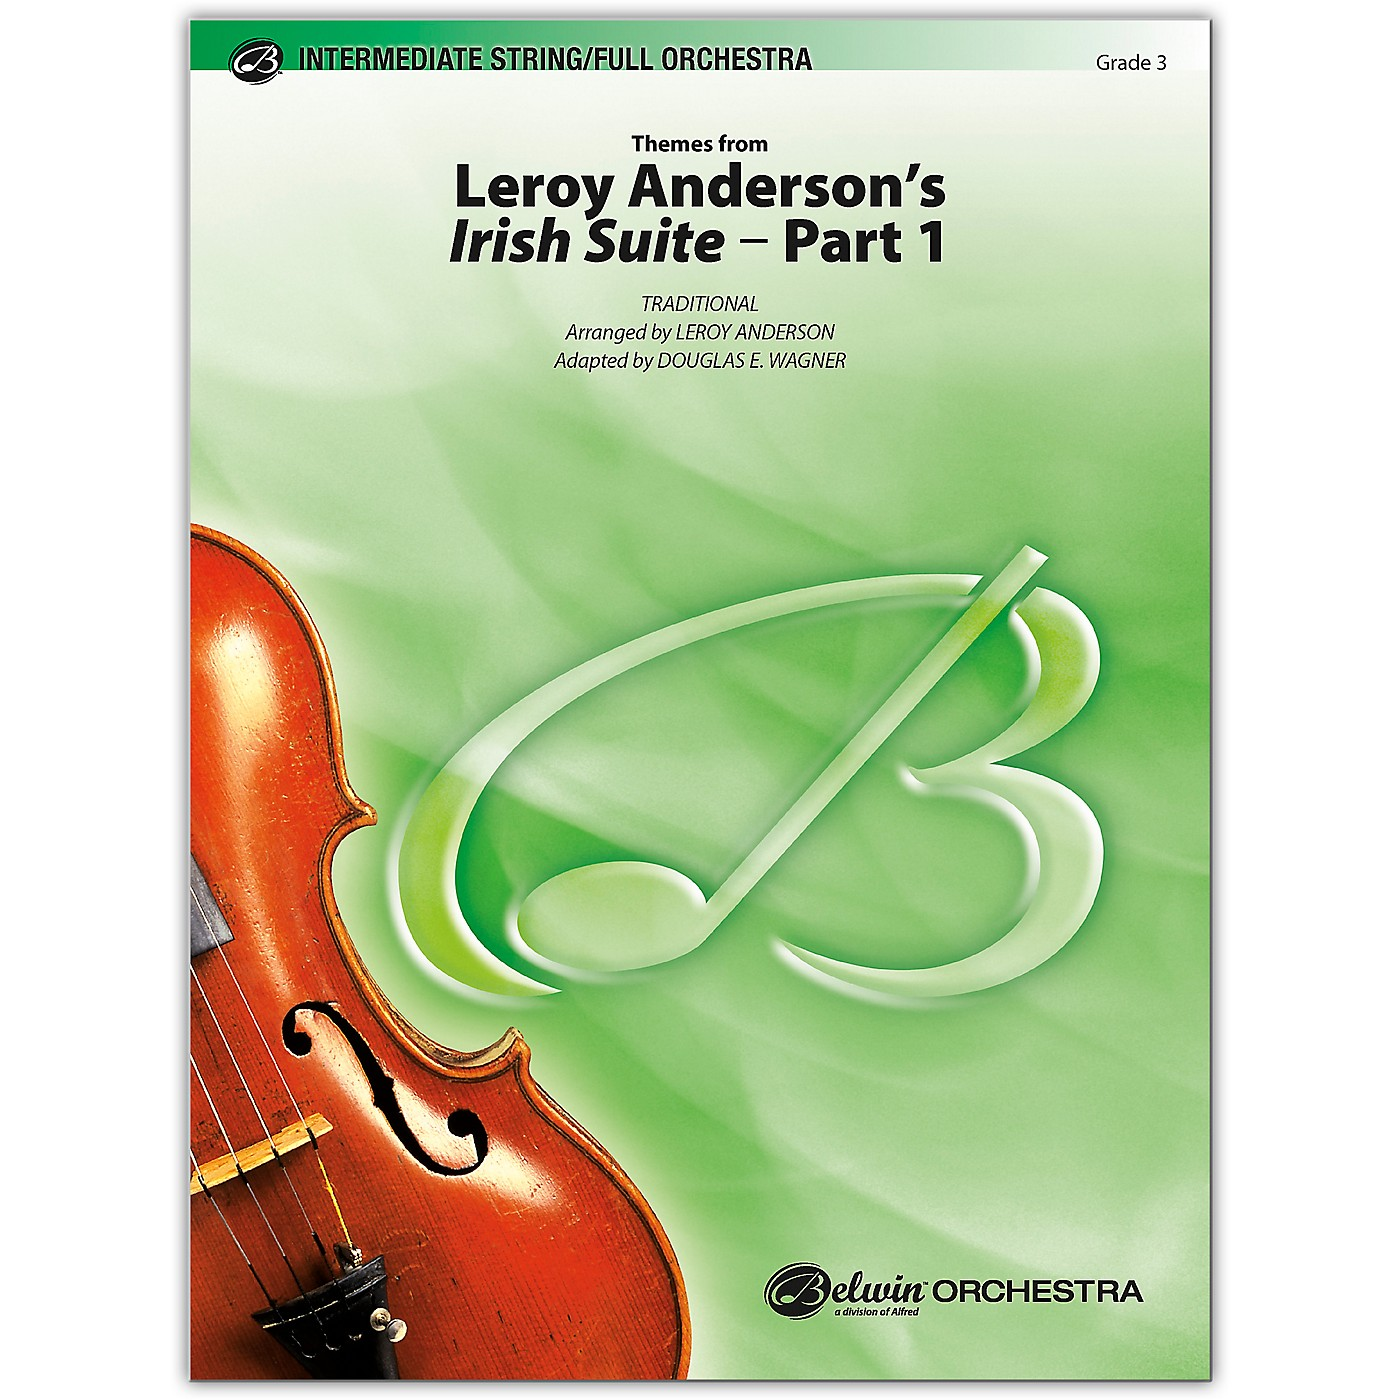 BELWIN Leroy Anderson's Irish Suite, Part 1 (Themes from) 3 thumbnail